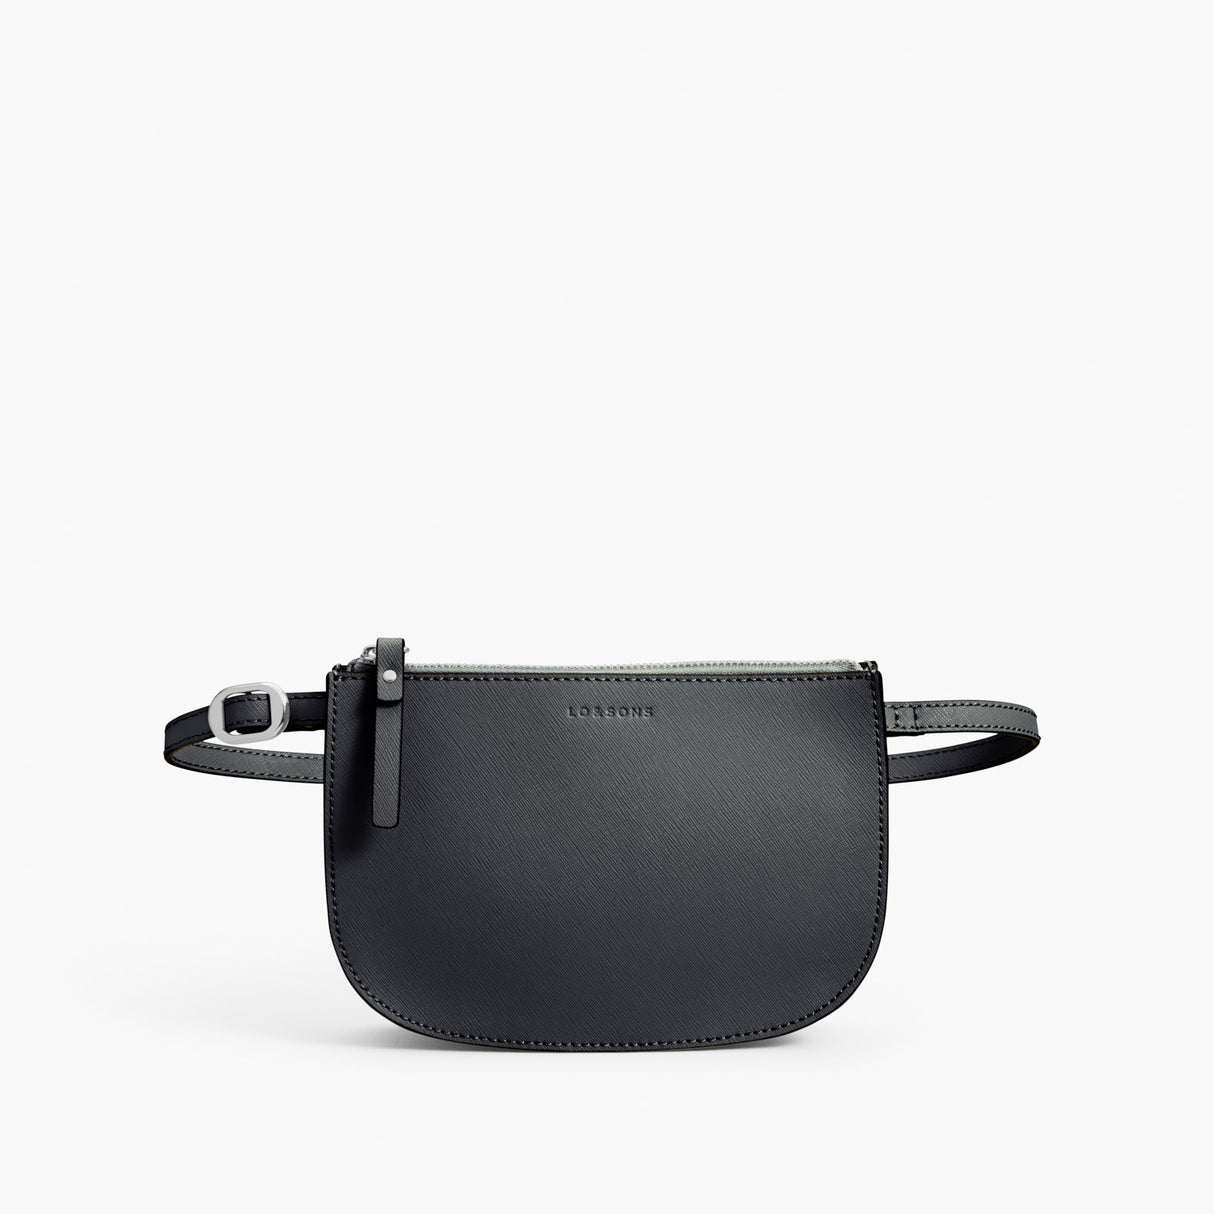 Front Belt - Waverley 2 - Saffiano Leather - Dark Grey / Silver / Azure - Crossbody Bag - Lo & Sons